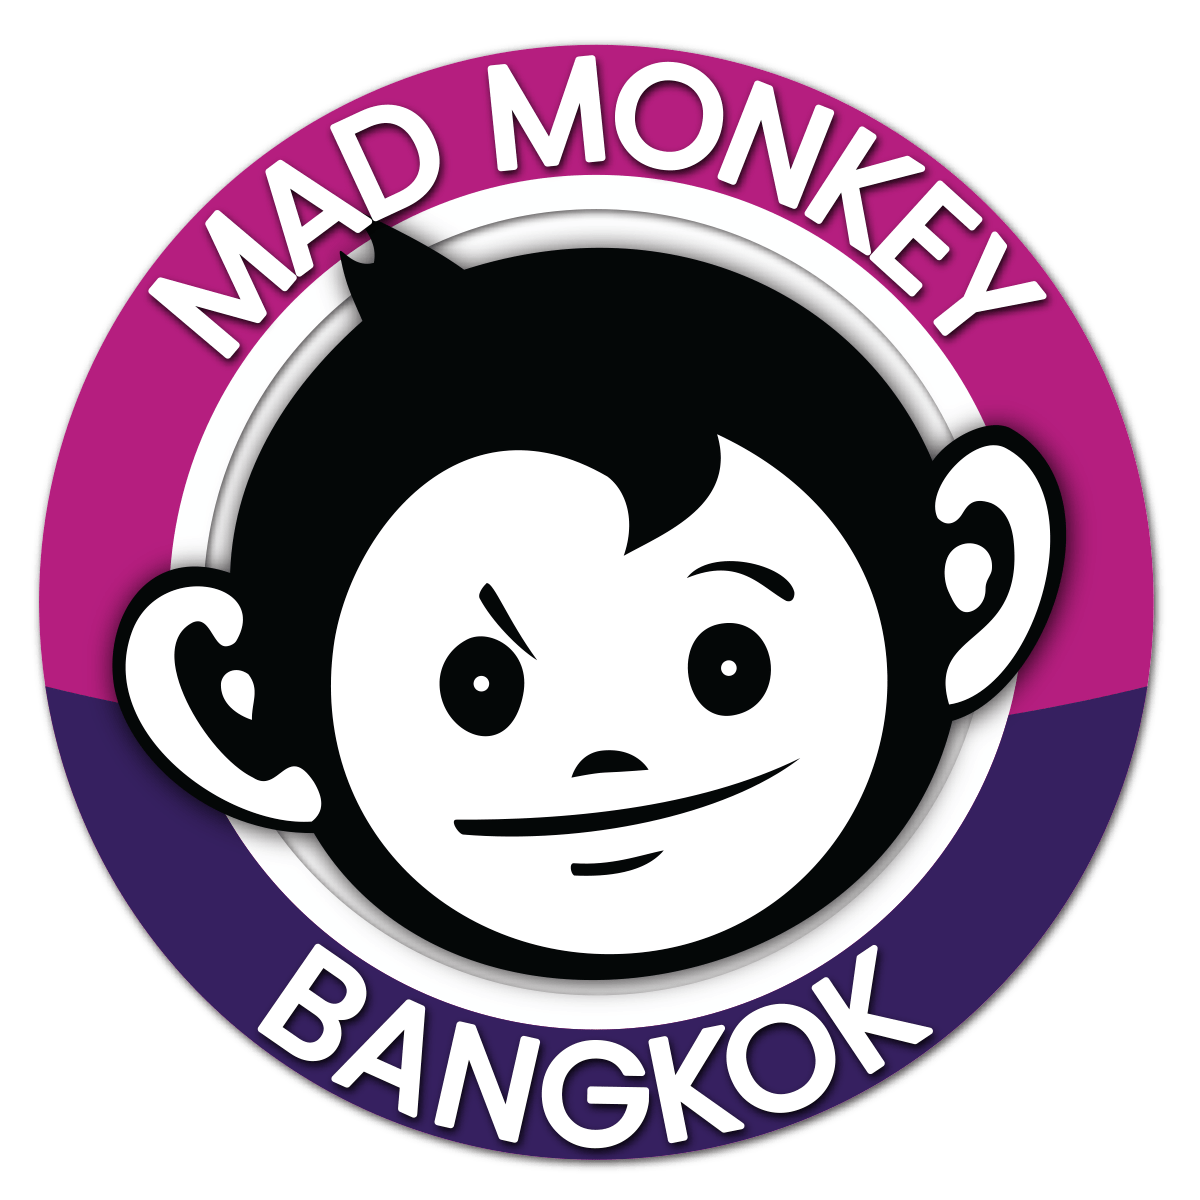 Mad Monkey Hostels Bangkok Facebook